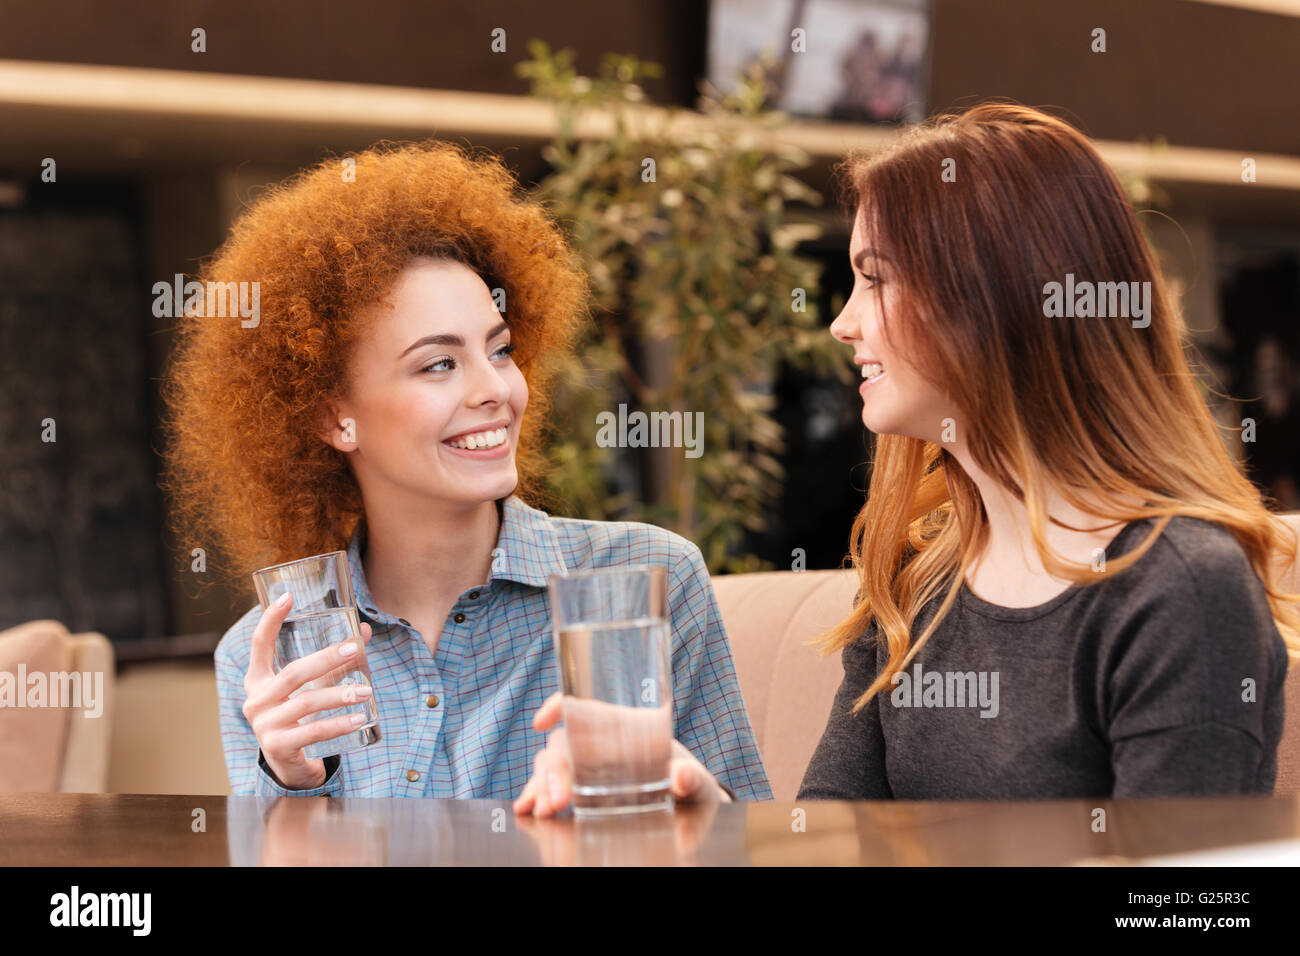 Two happy attractive young women smiling and drinking water in cafe - Stock Image